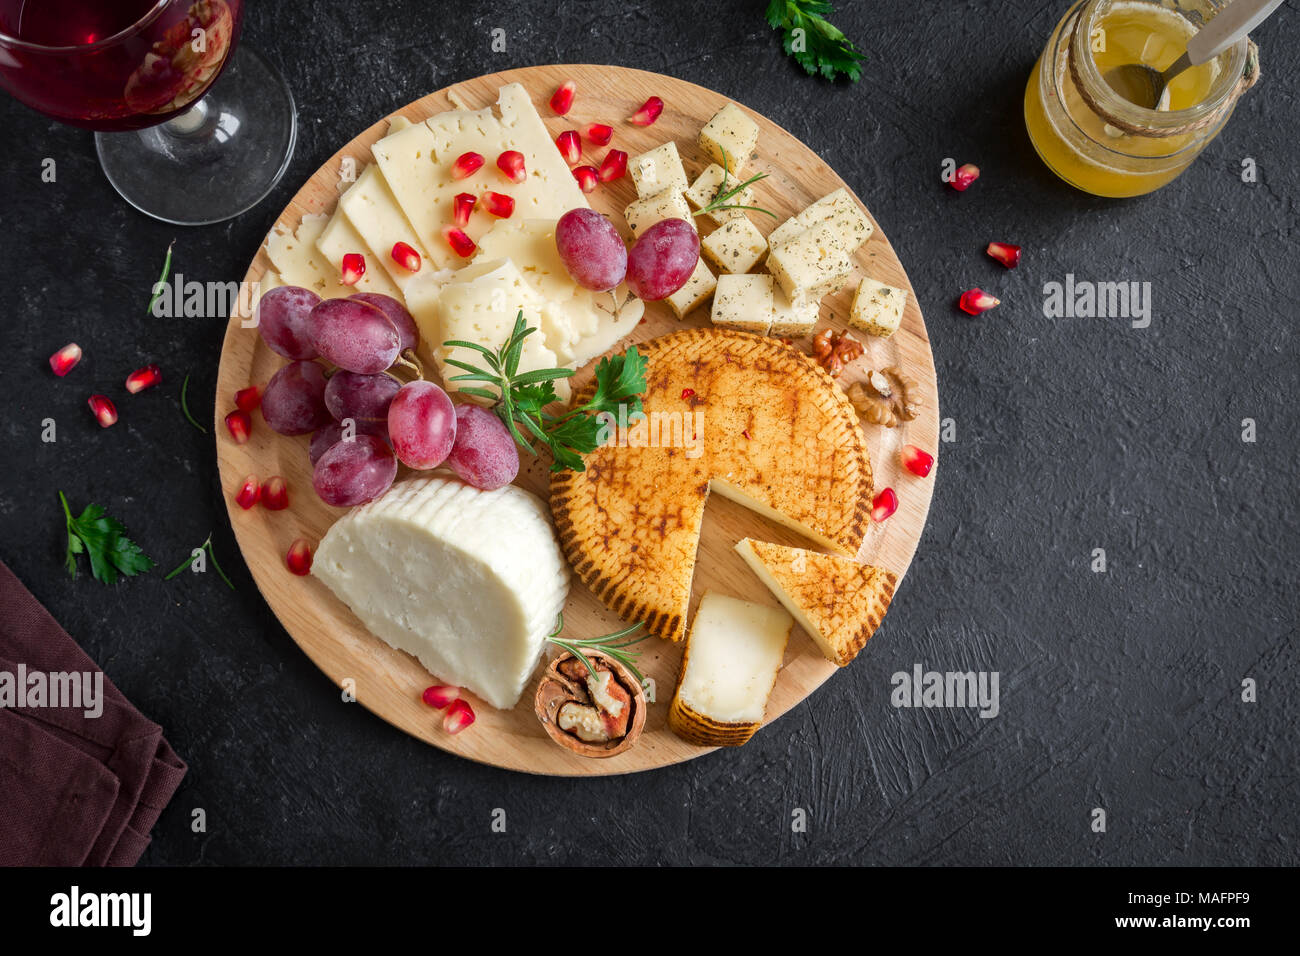 Cheese platter with assorted cheeses, grapes, nuts over black background, copy space. Italian cheese and fruit platter with honey and wine. - Stock Image